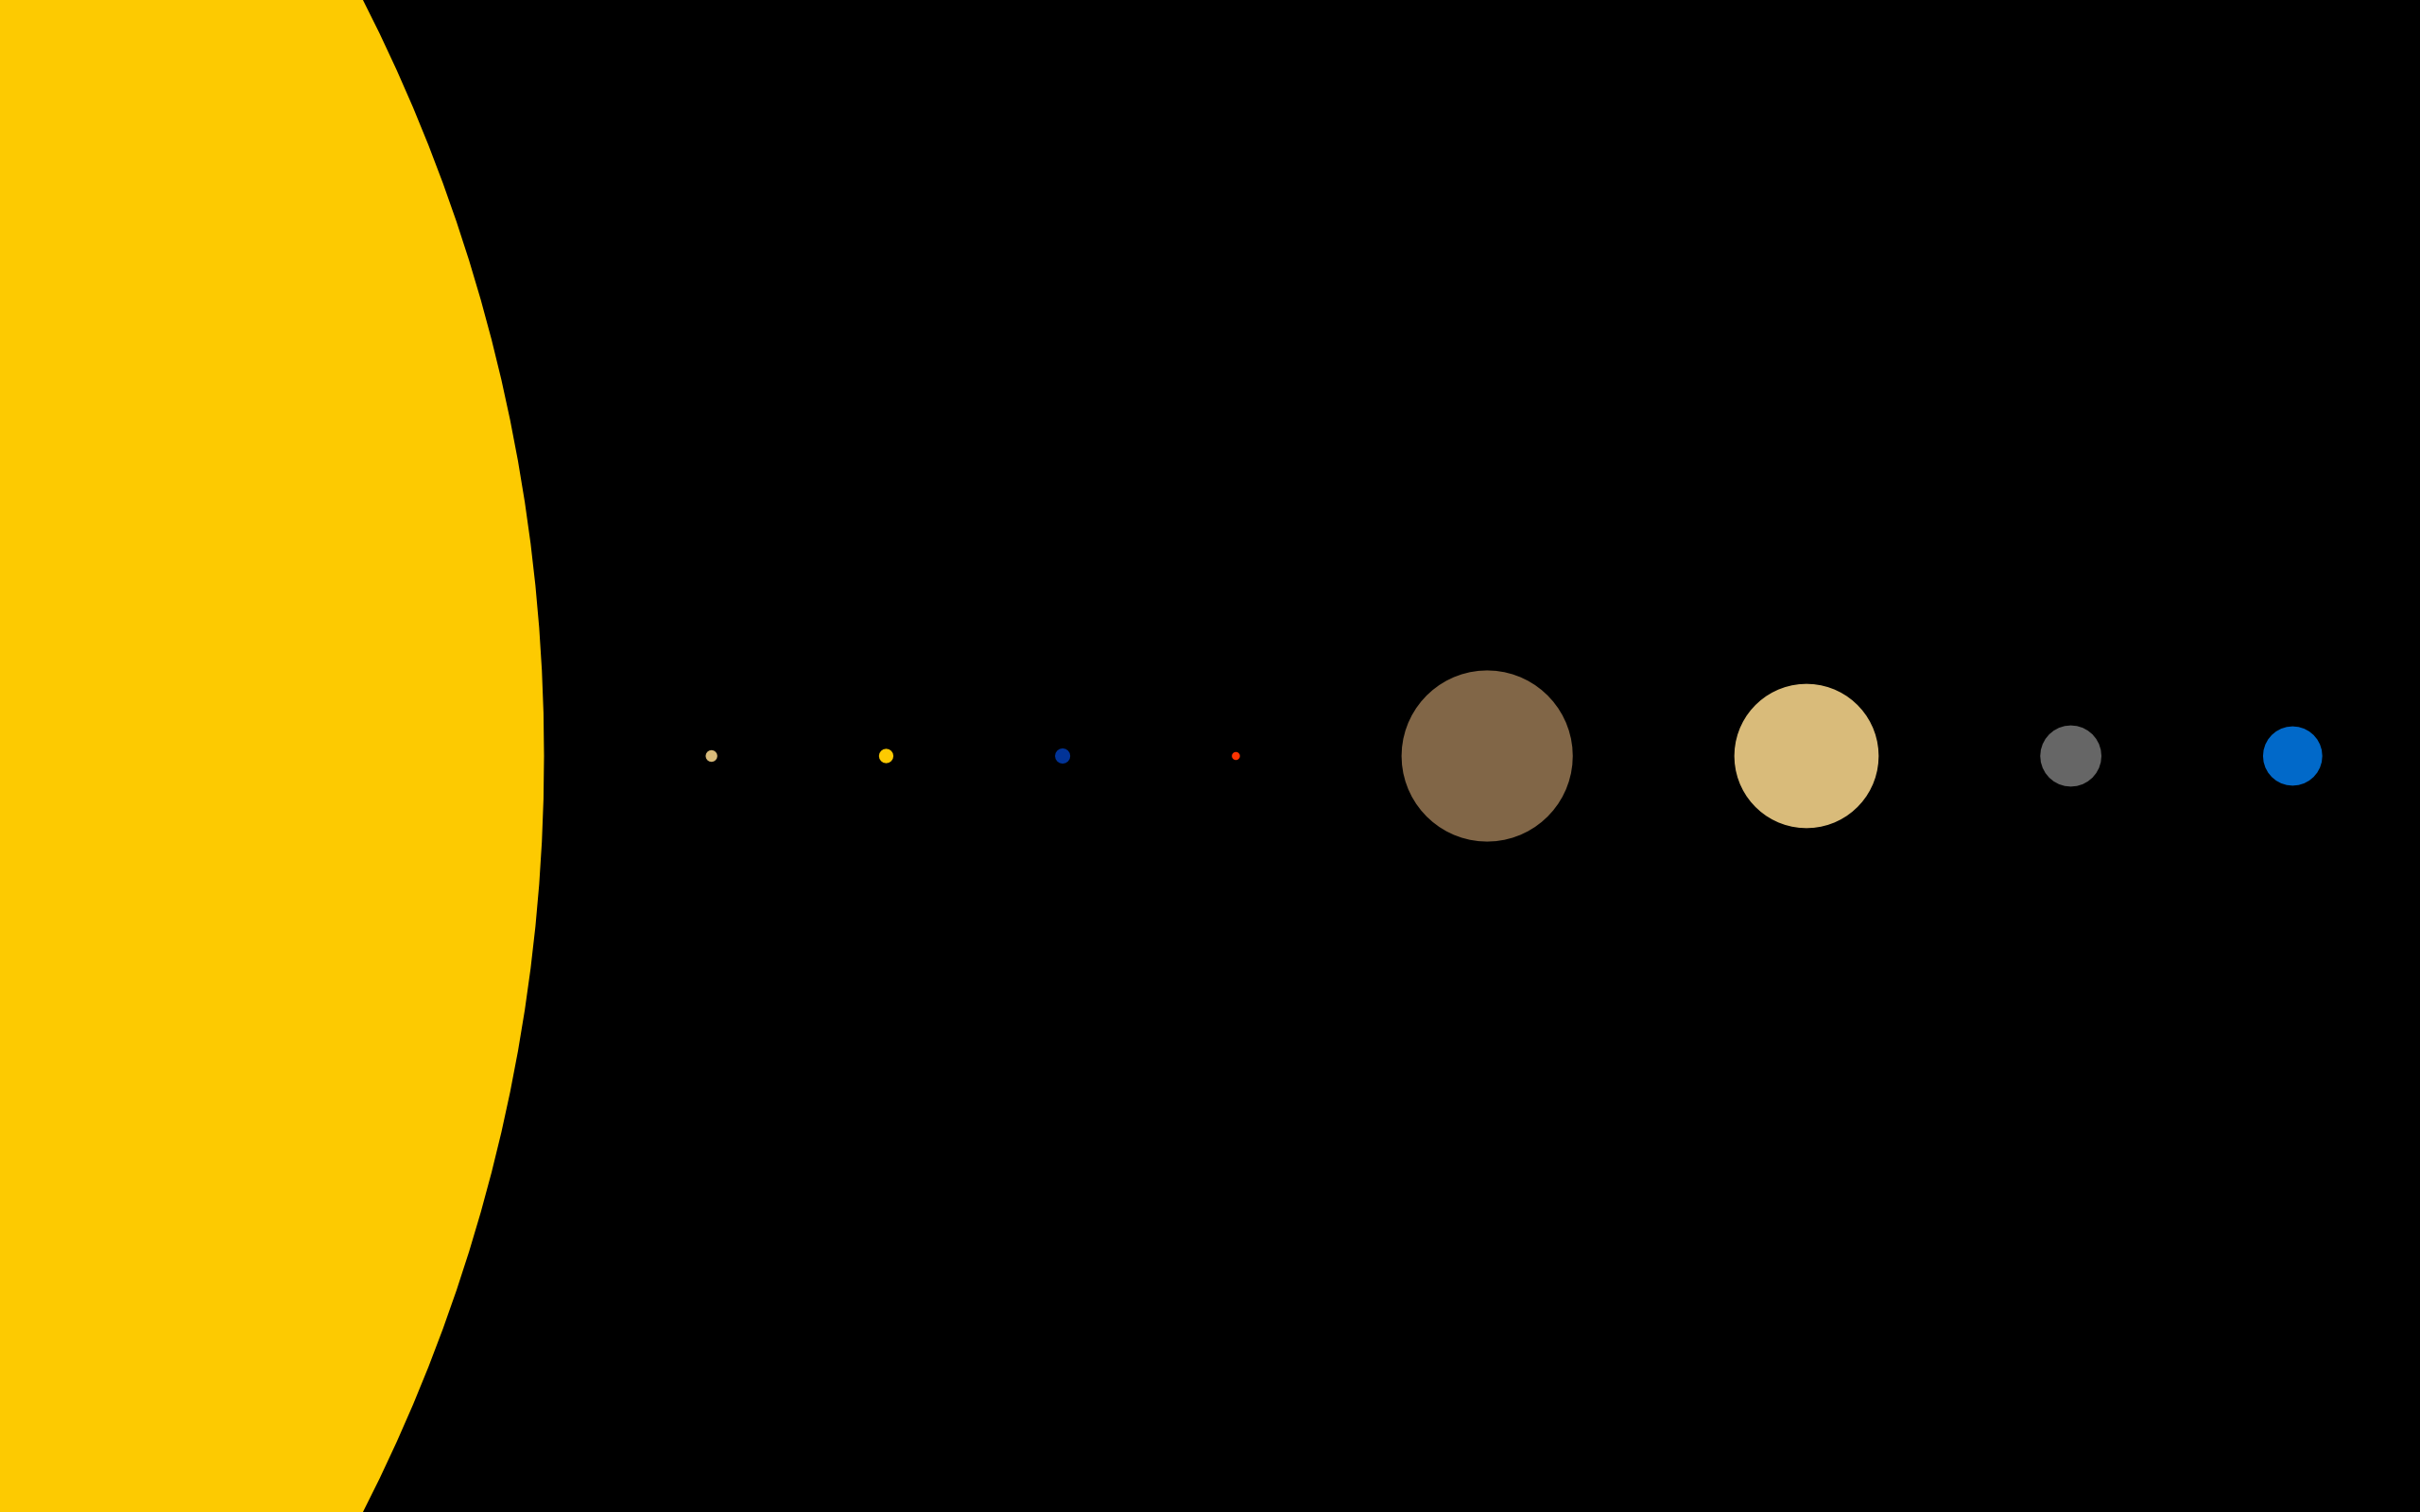 Solar system by guillaume cabanel simple desktops solar system ccuart Choice Image